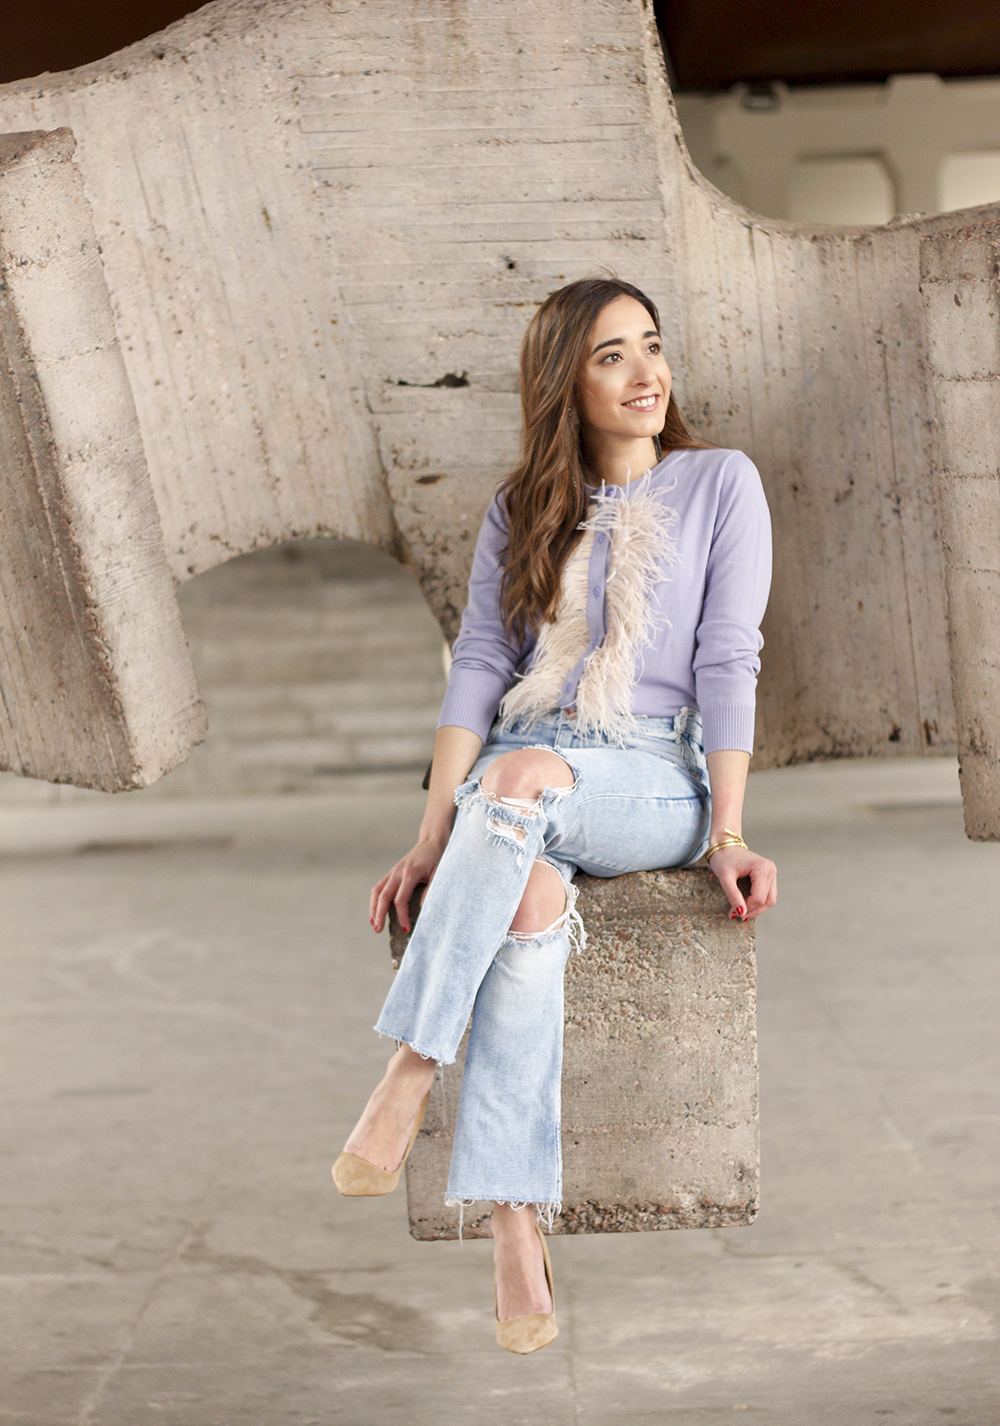 lavender sweater ripped jeans gucci bag nude heels casual street style casual outfit 20199